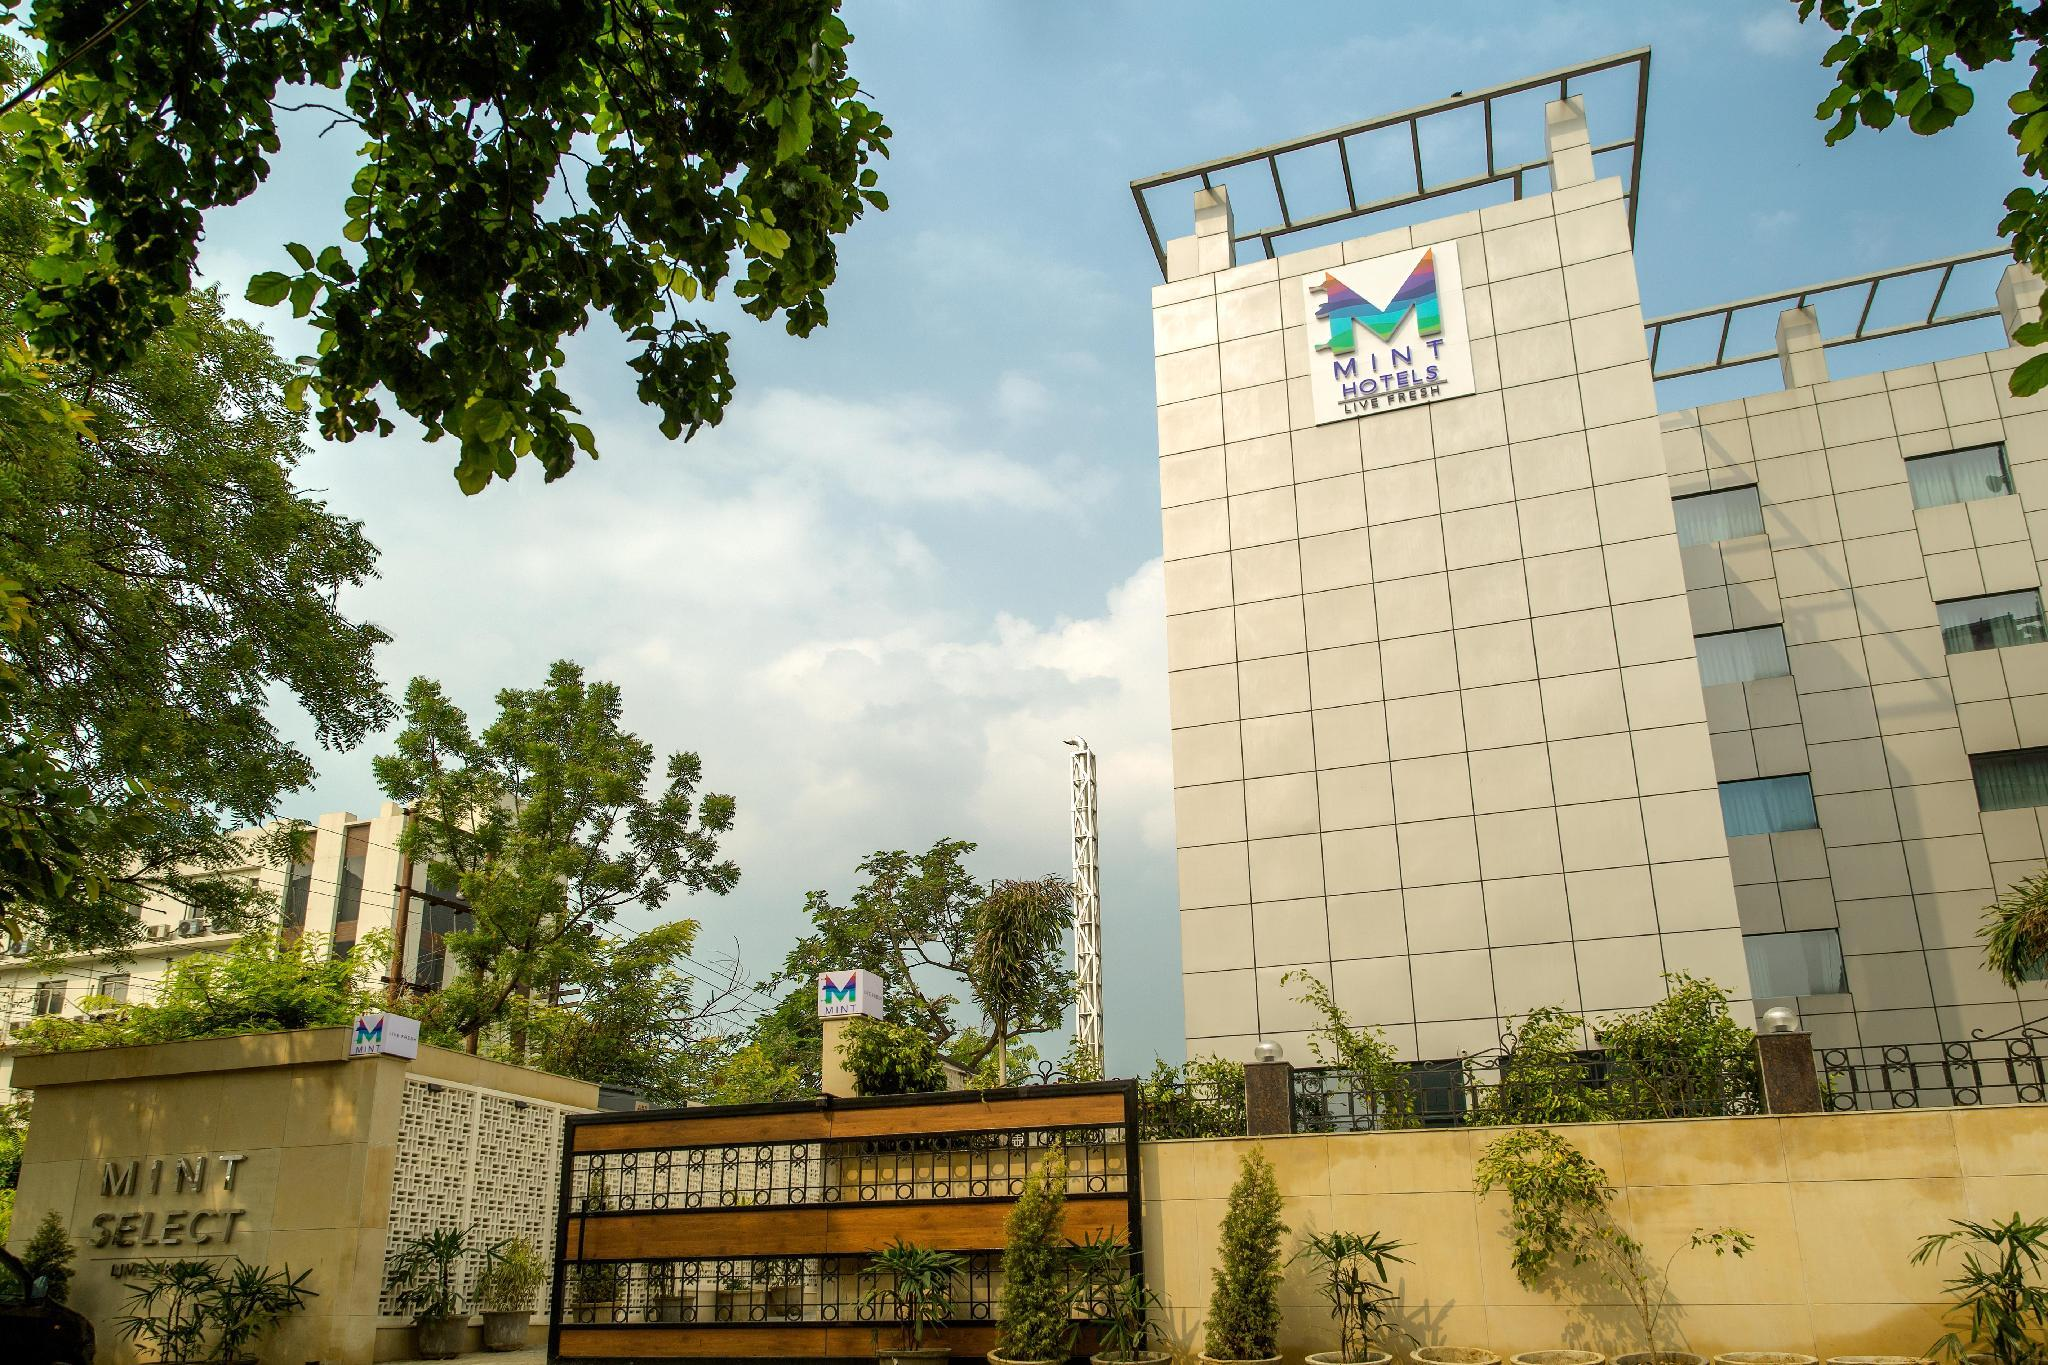 Hotel Mint Select Noida